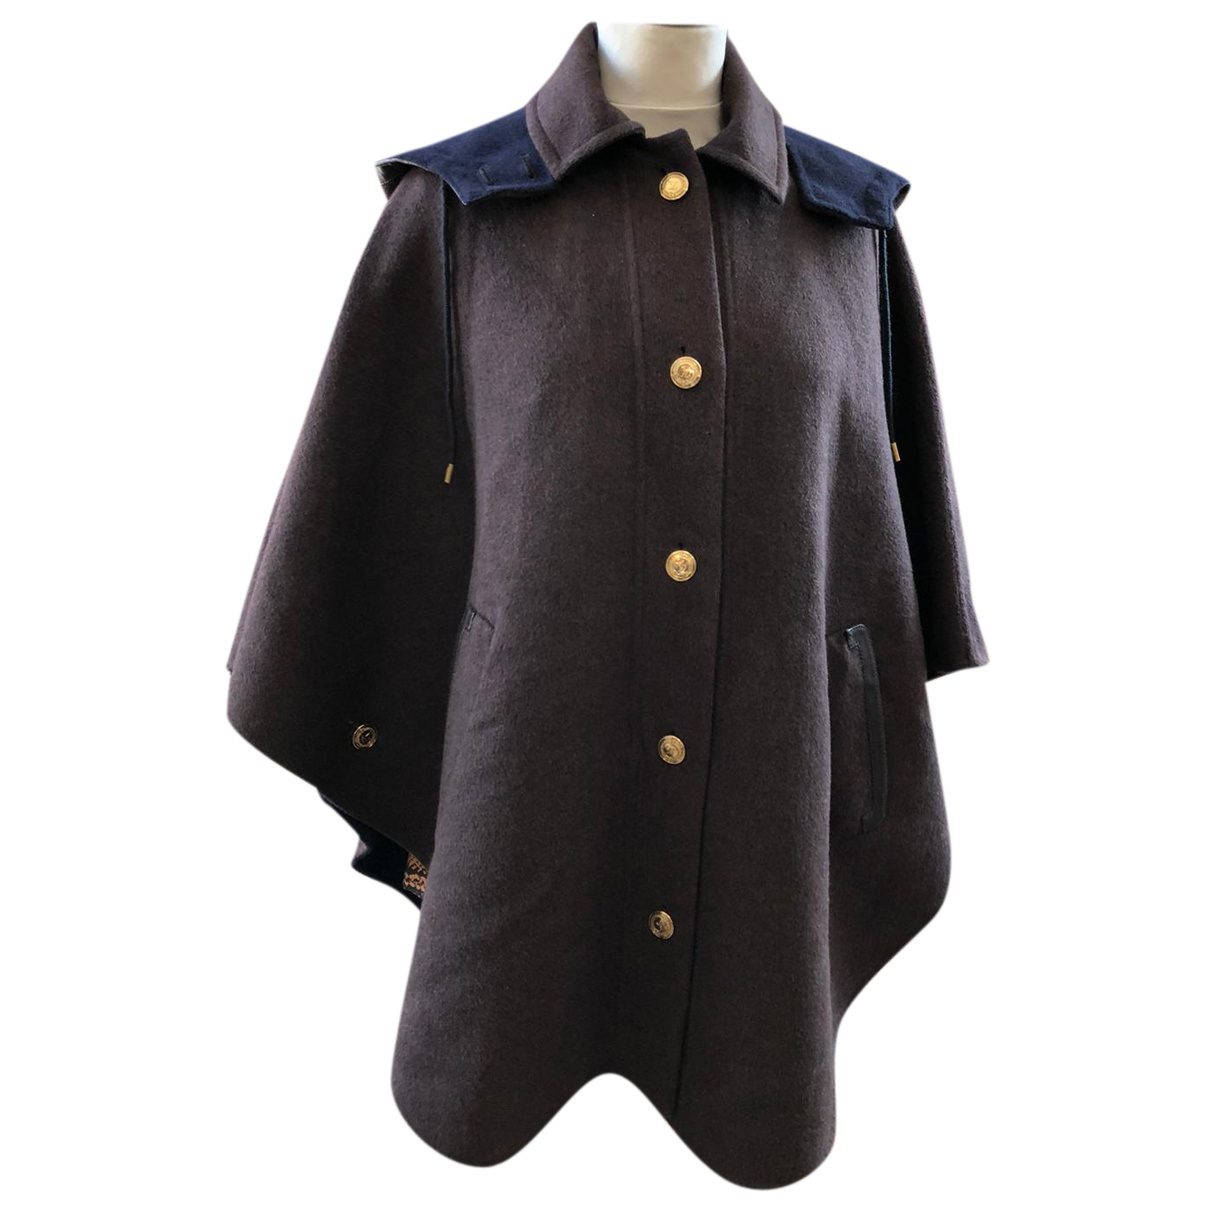 Louis Vuitton N Brown Cashmere jacket for Women One Size FR